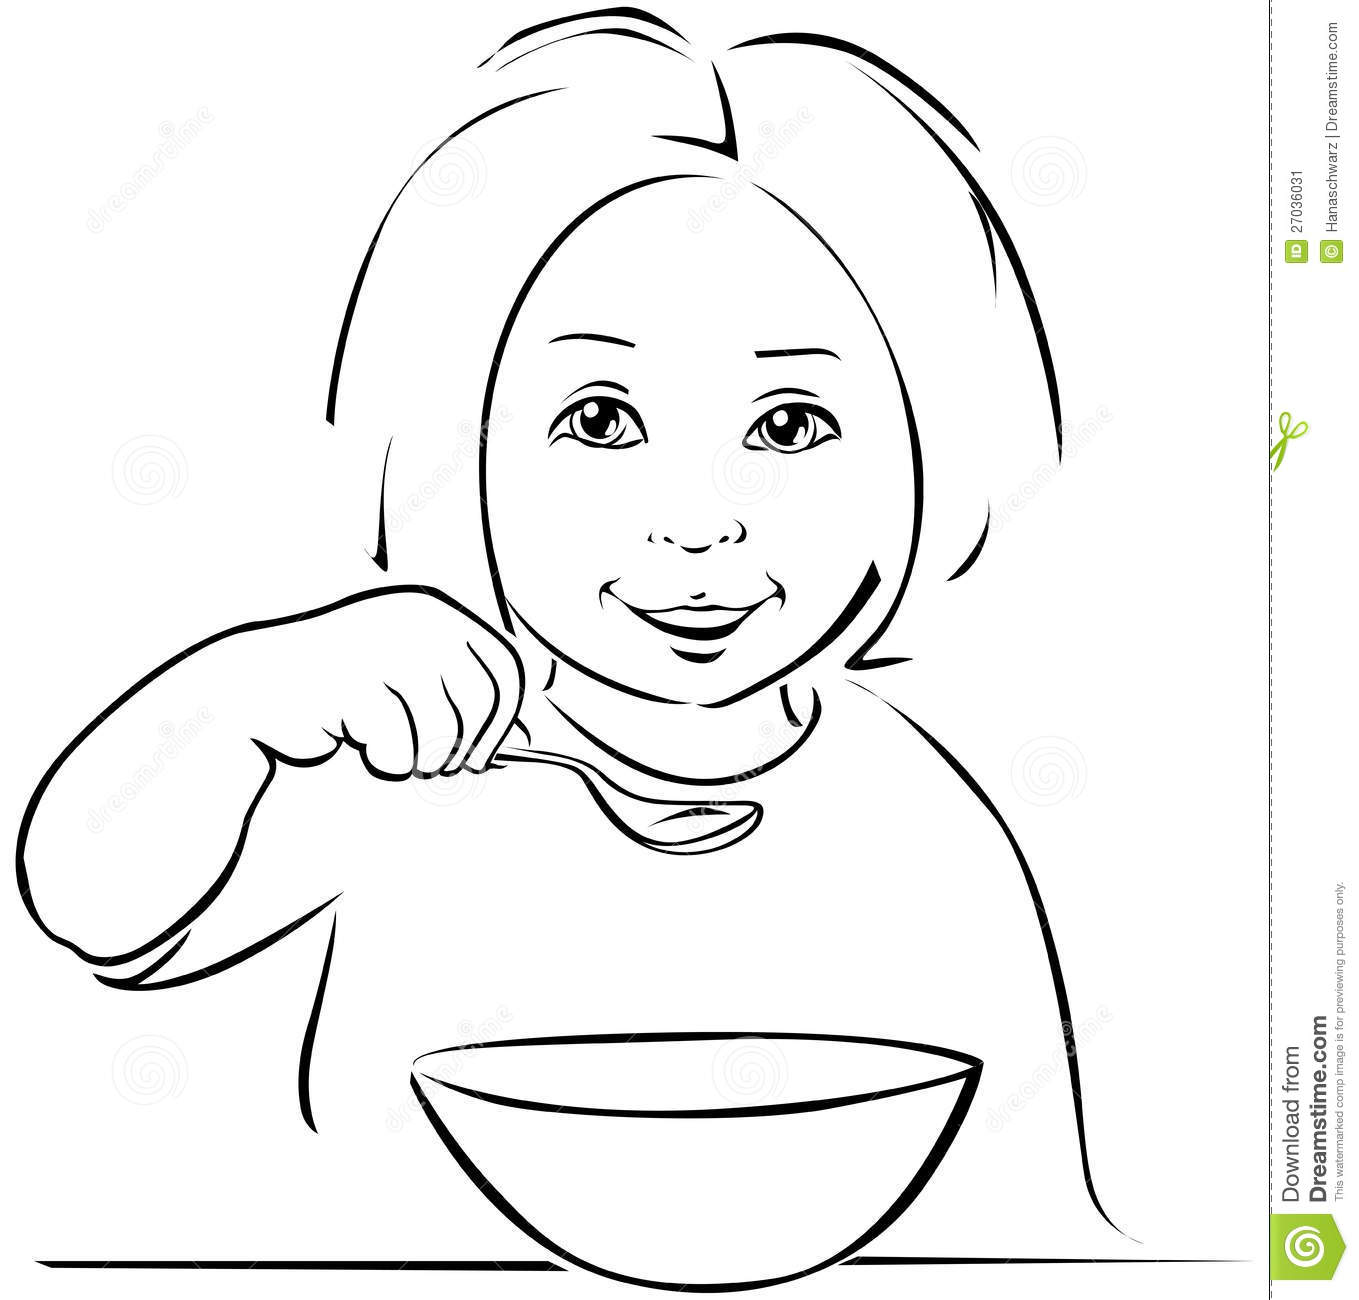 Child eating black outline stock vector illustration for Esky coloring pages